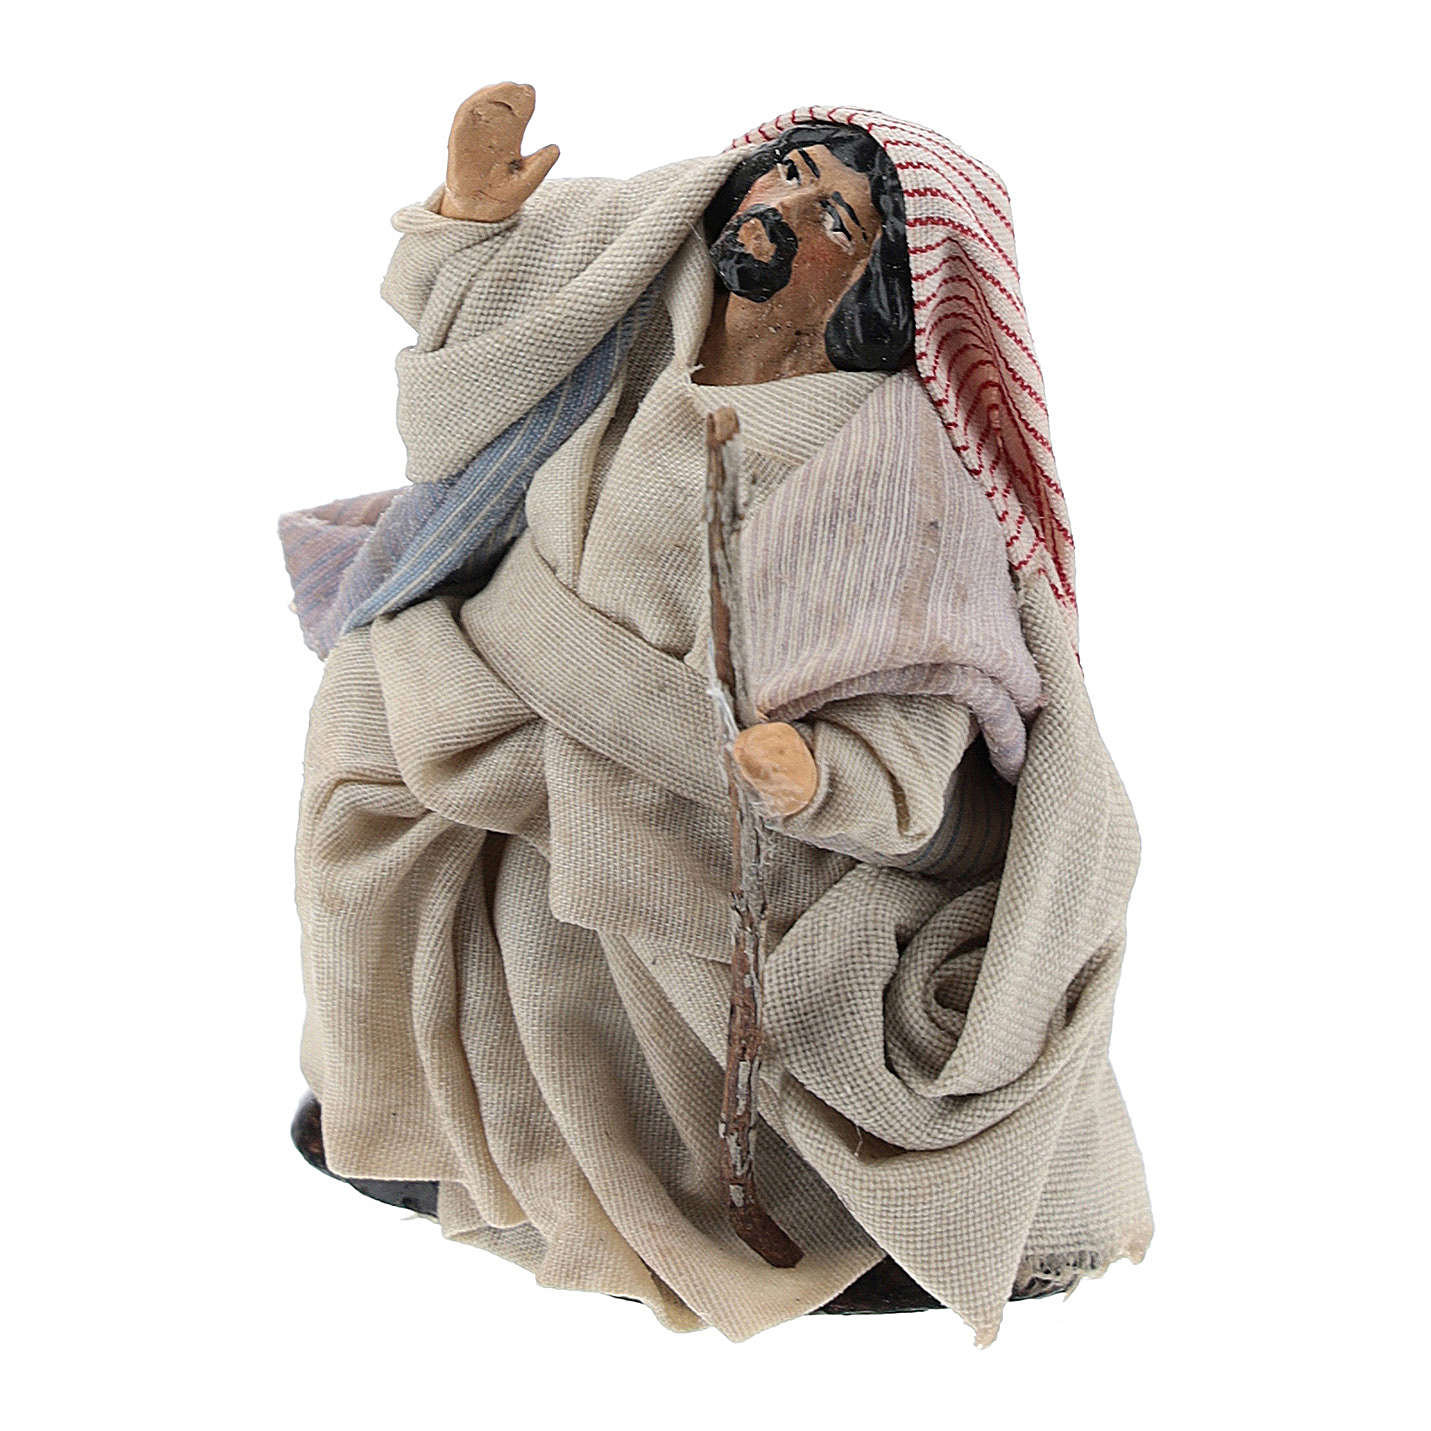 Neapolitan Nativity figurine, Arabian 8cm 4